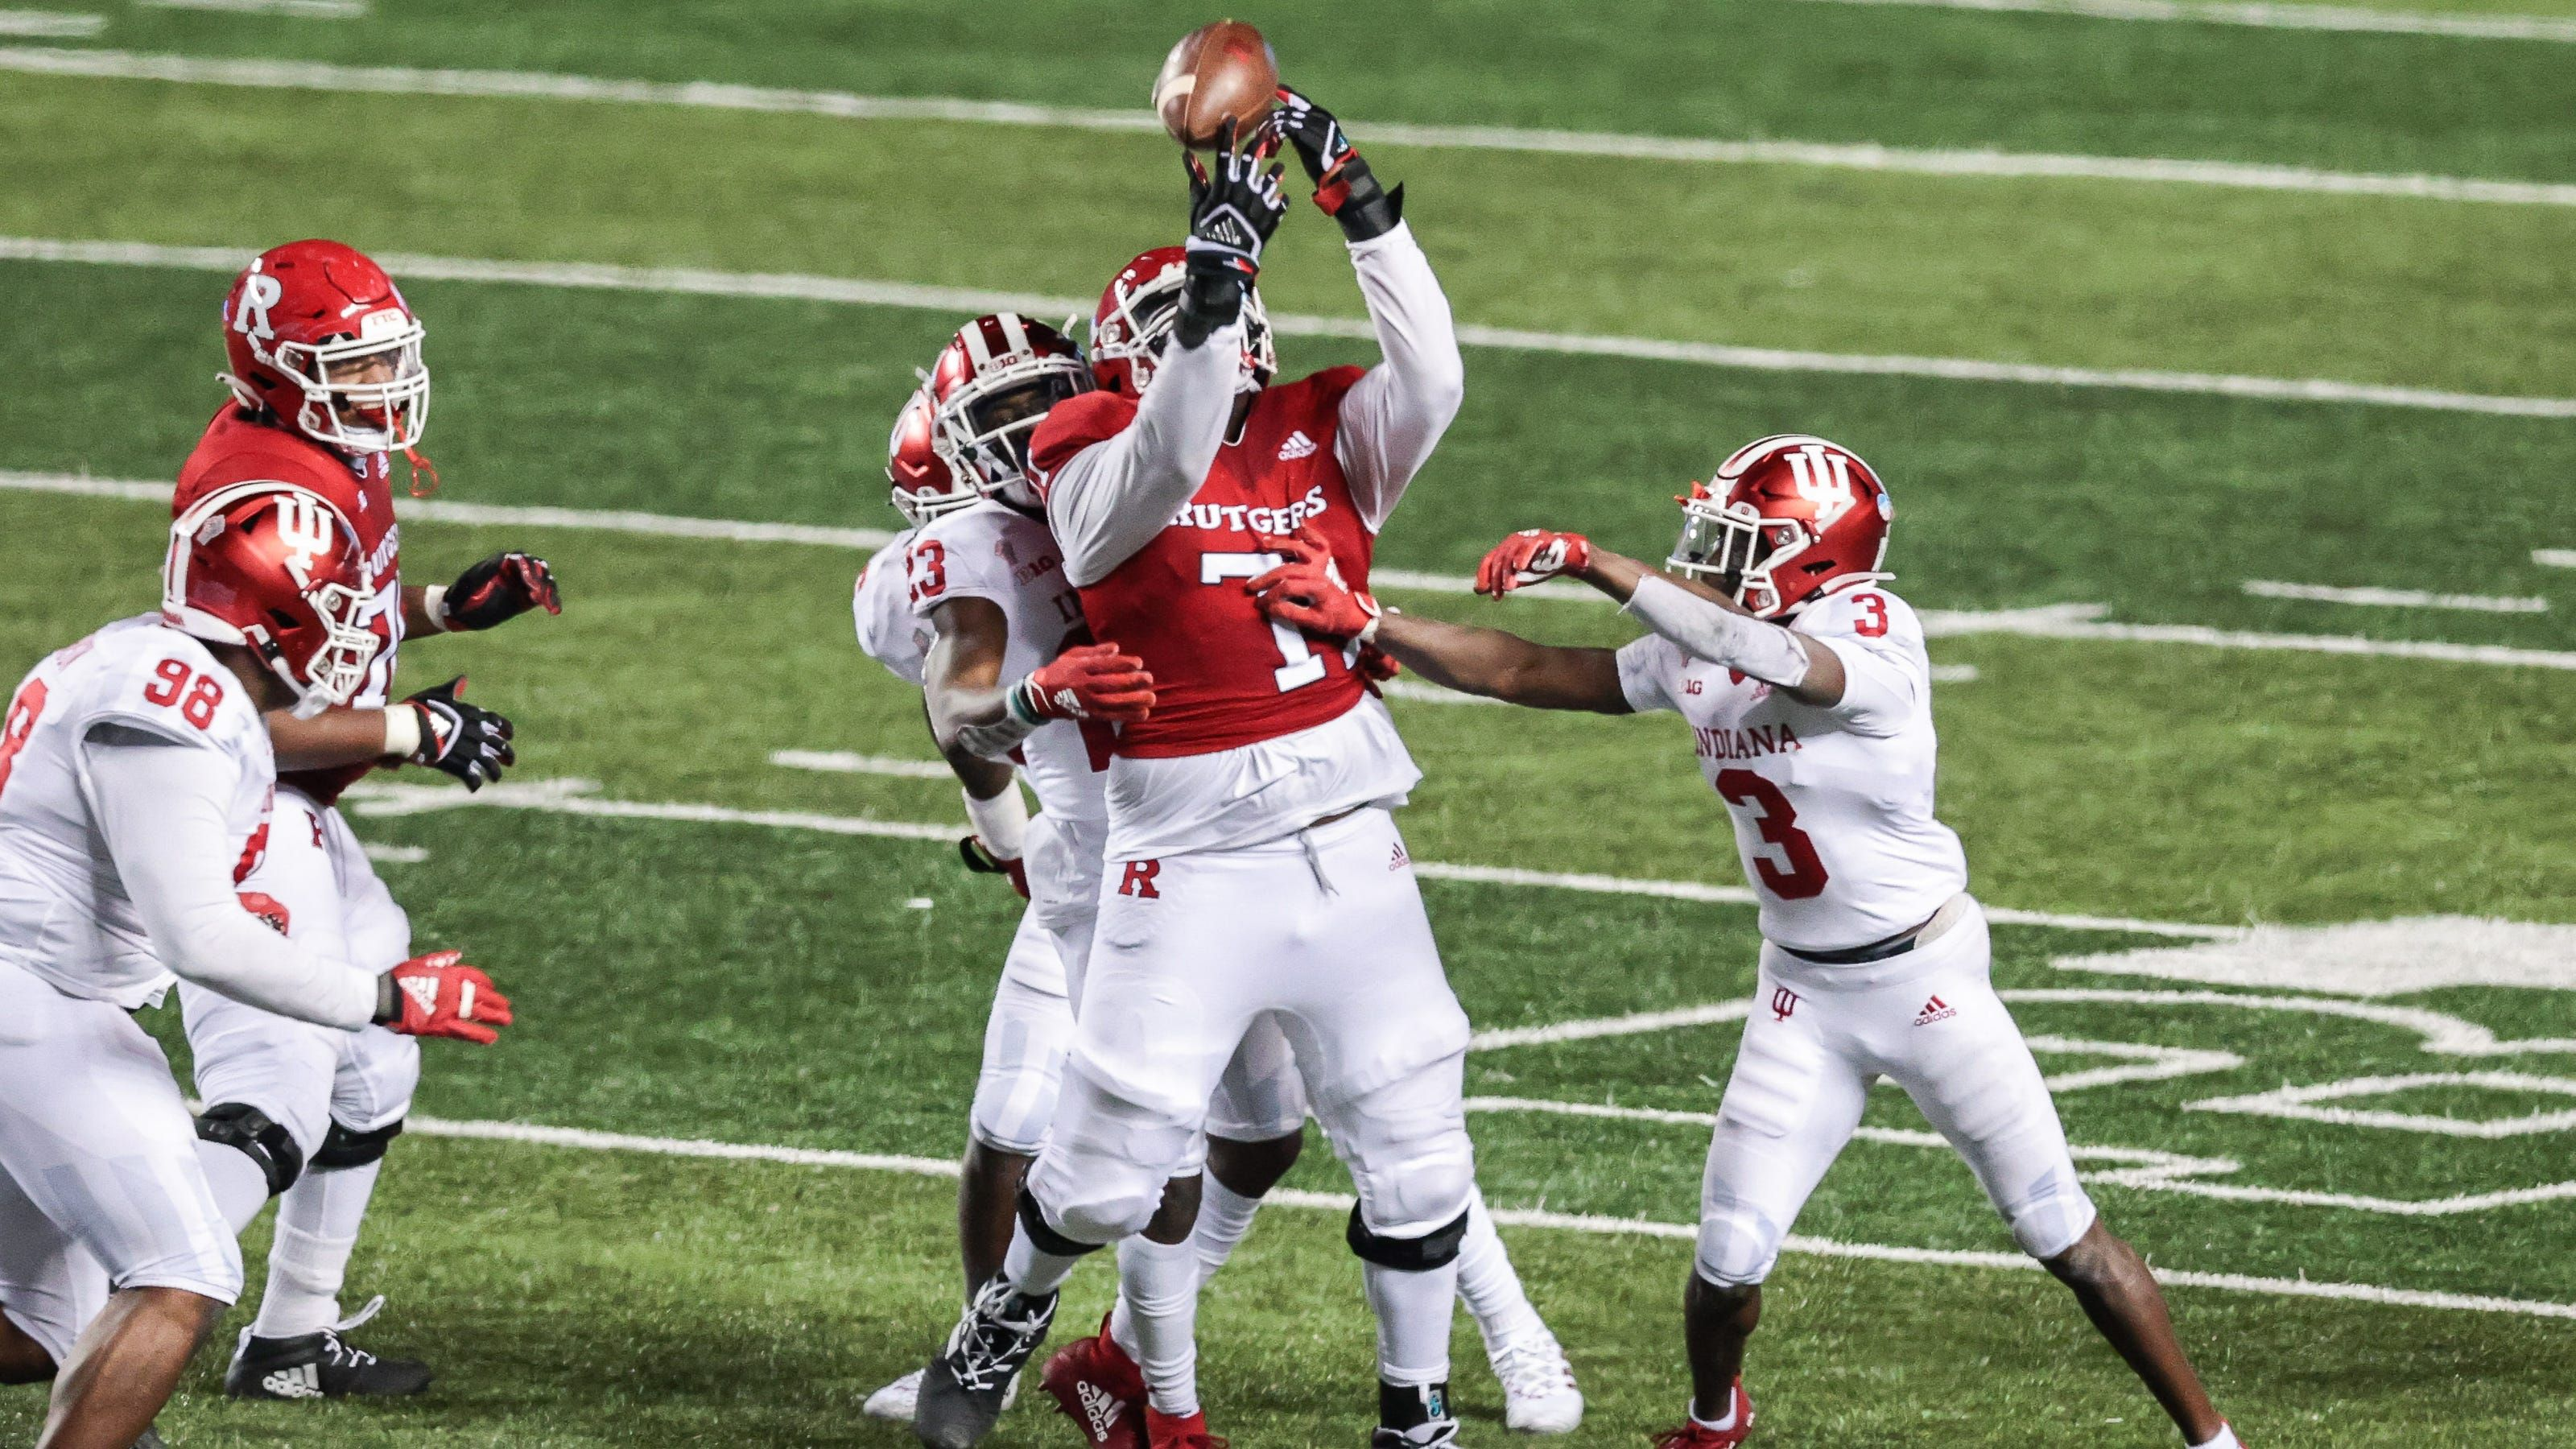 Rutgers Nearly Pulled Off One Of The Craziest Touchdowns In College Football History In 2020 College Football Rutgers Rutgers Football